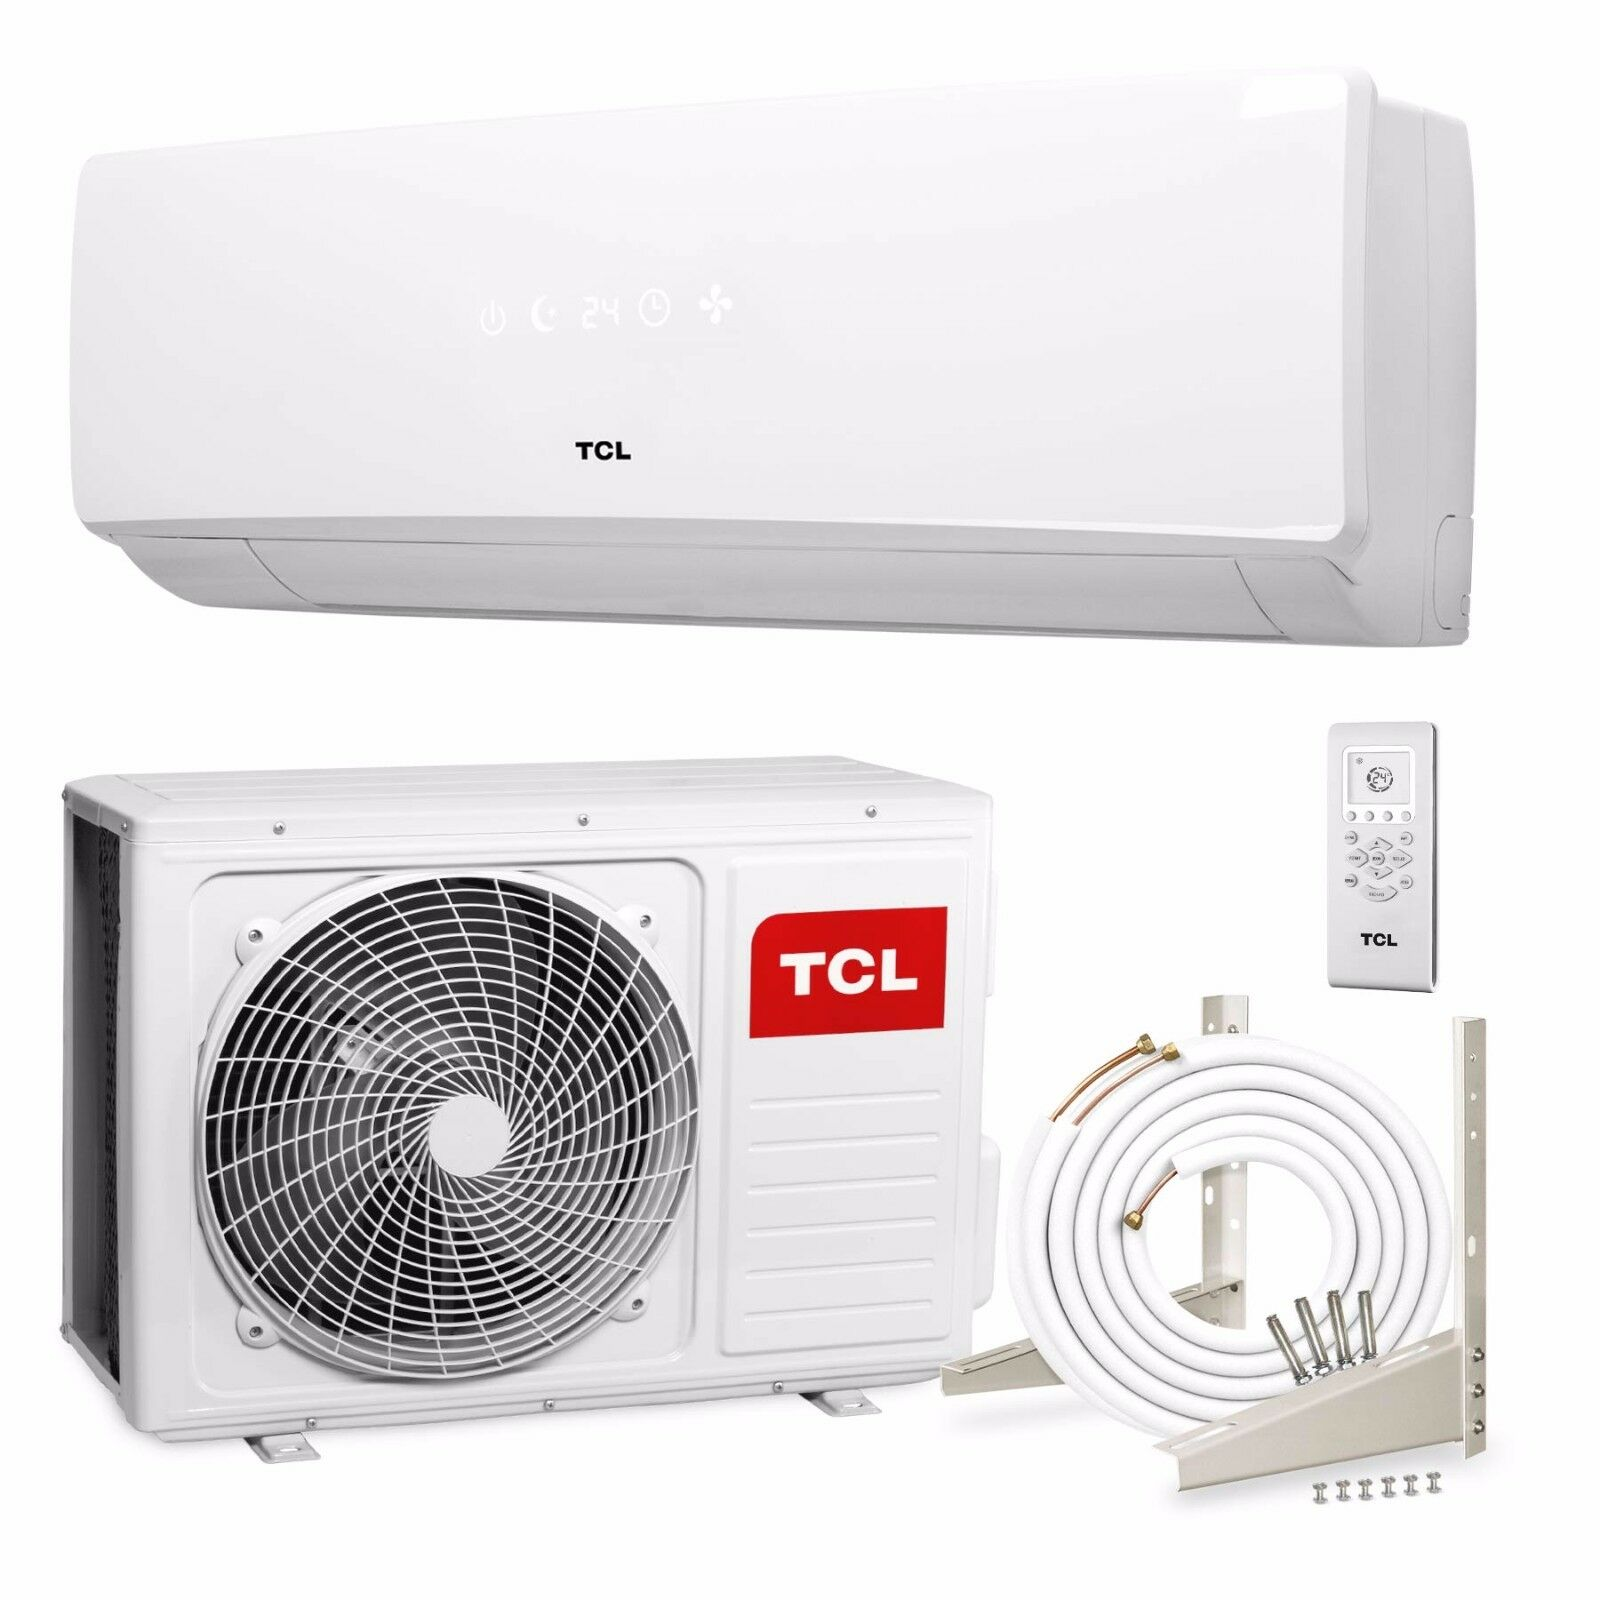 tcl inverter split klimaanlage 9000 btu 2 6kw klima. Black Bedroom Furniture Sets. Home Design Ideas